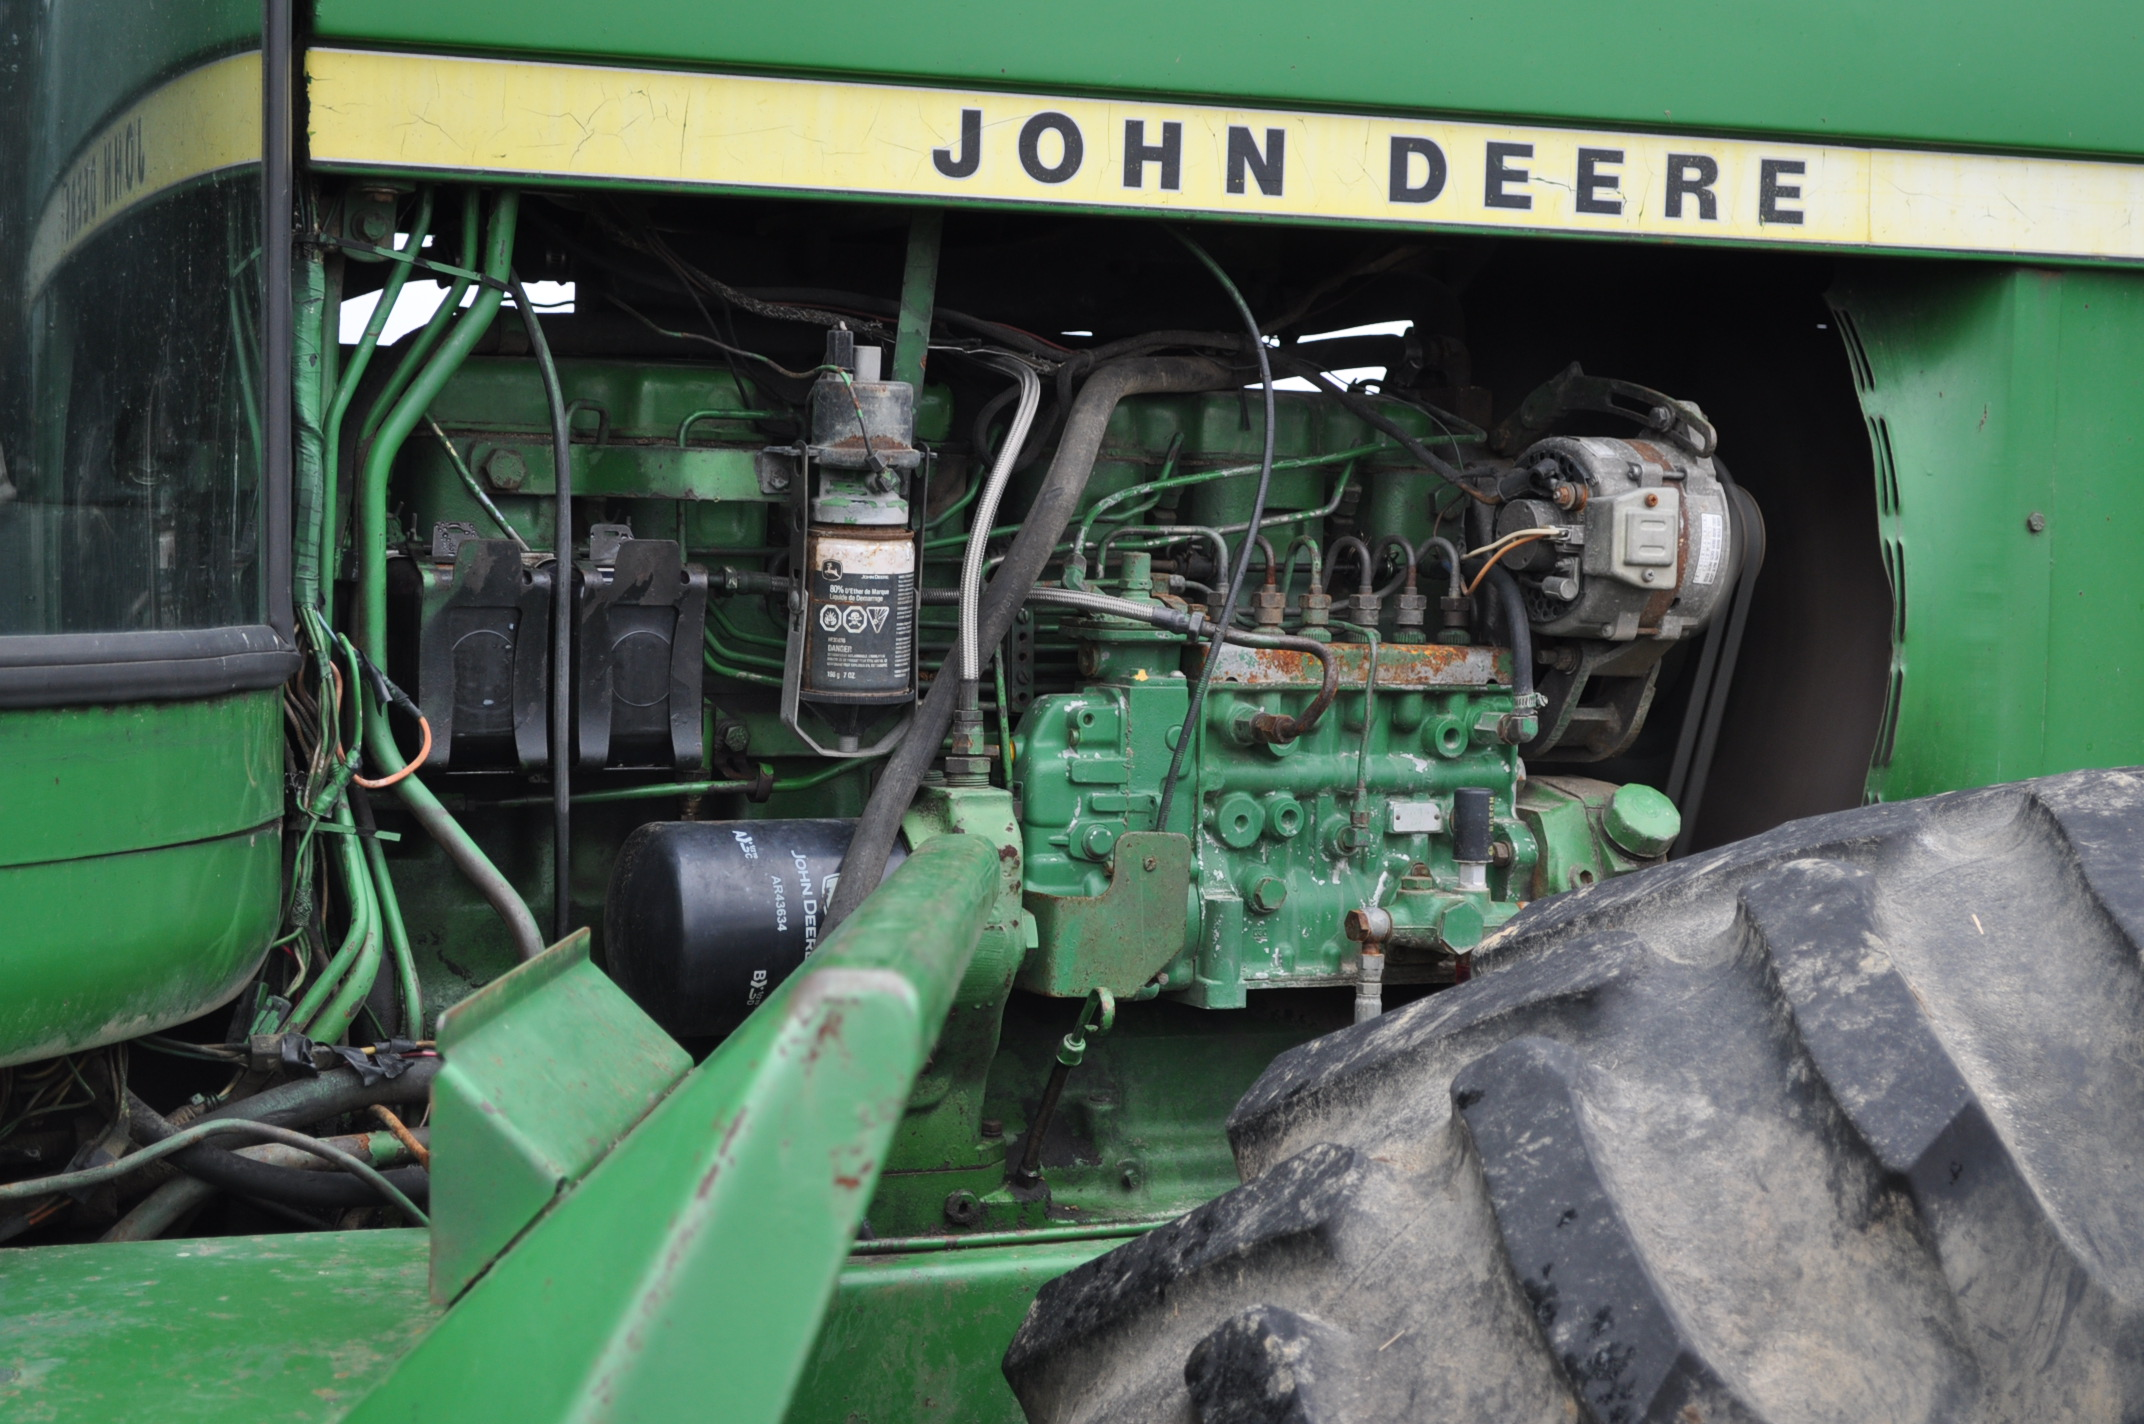 John Deere 8430 tractor, 4WD, diesel, 20.8-34 duals, CHA, Quad range, 3 hyd remotes, 1000 pto, 3 pt, - Image 9 of 19